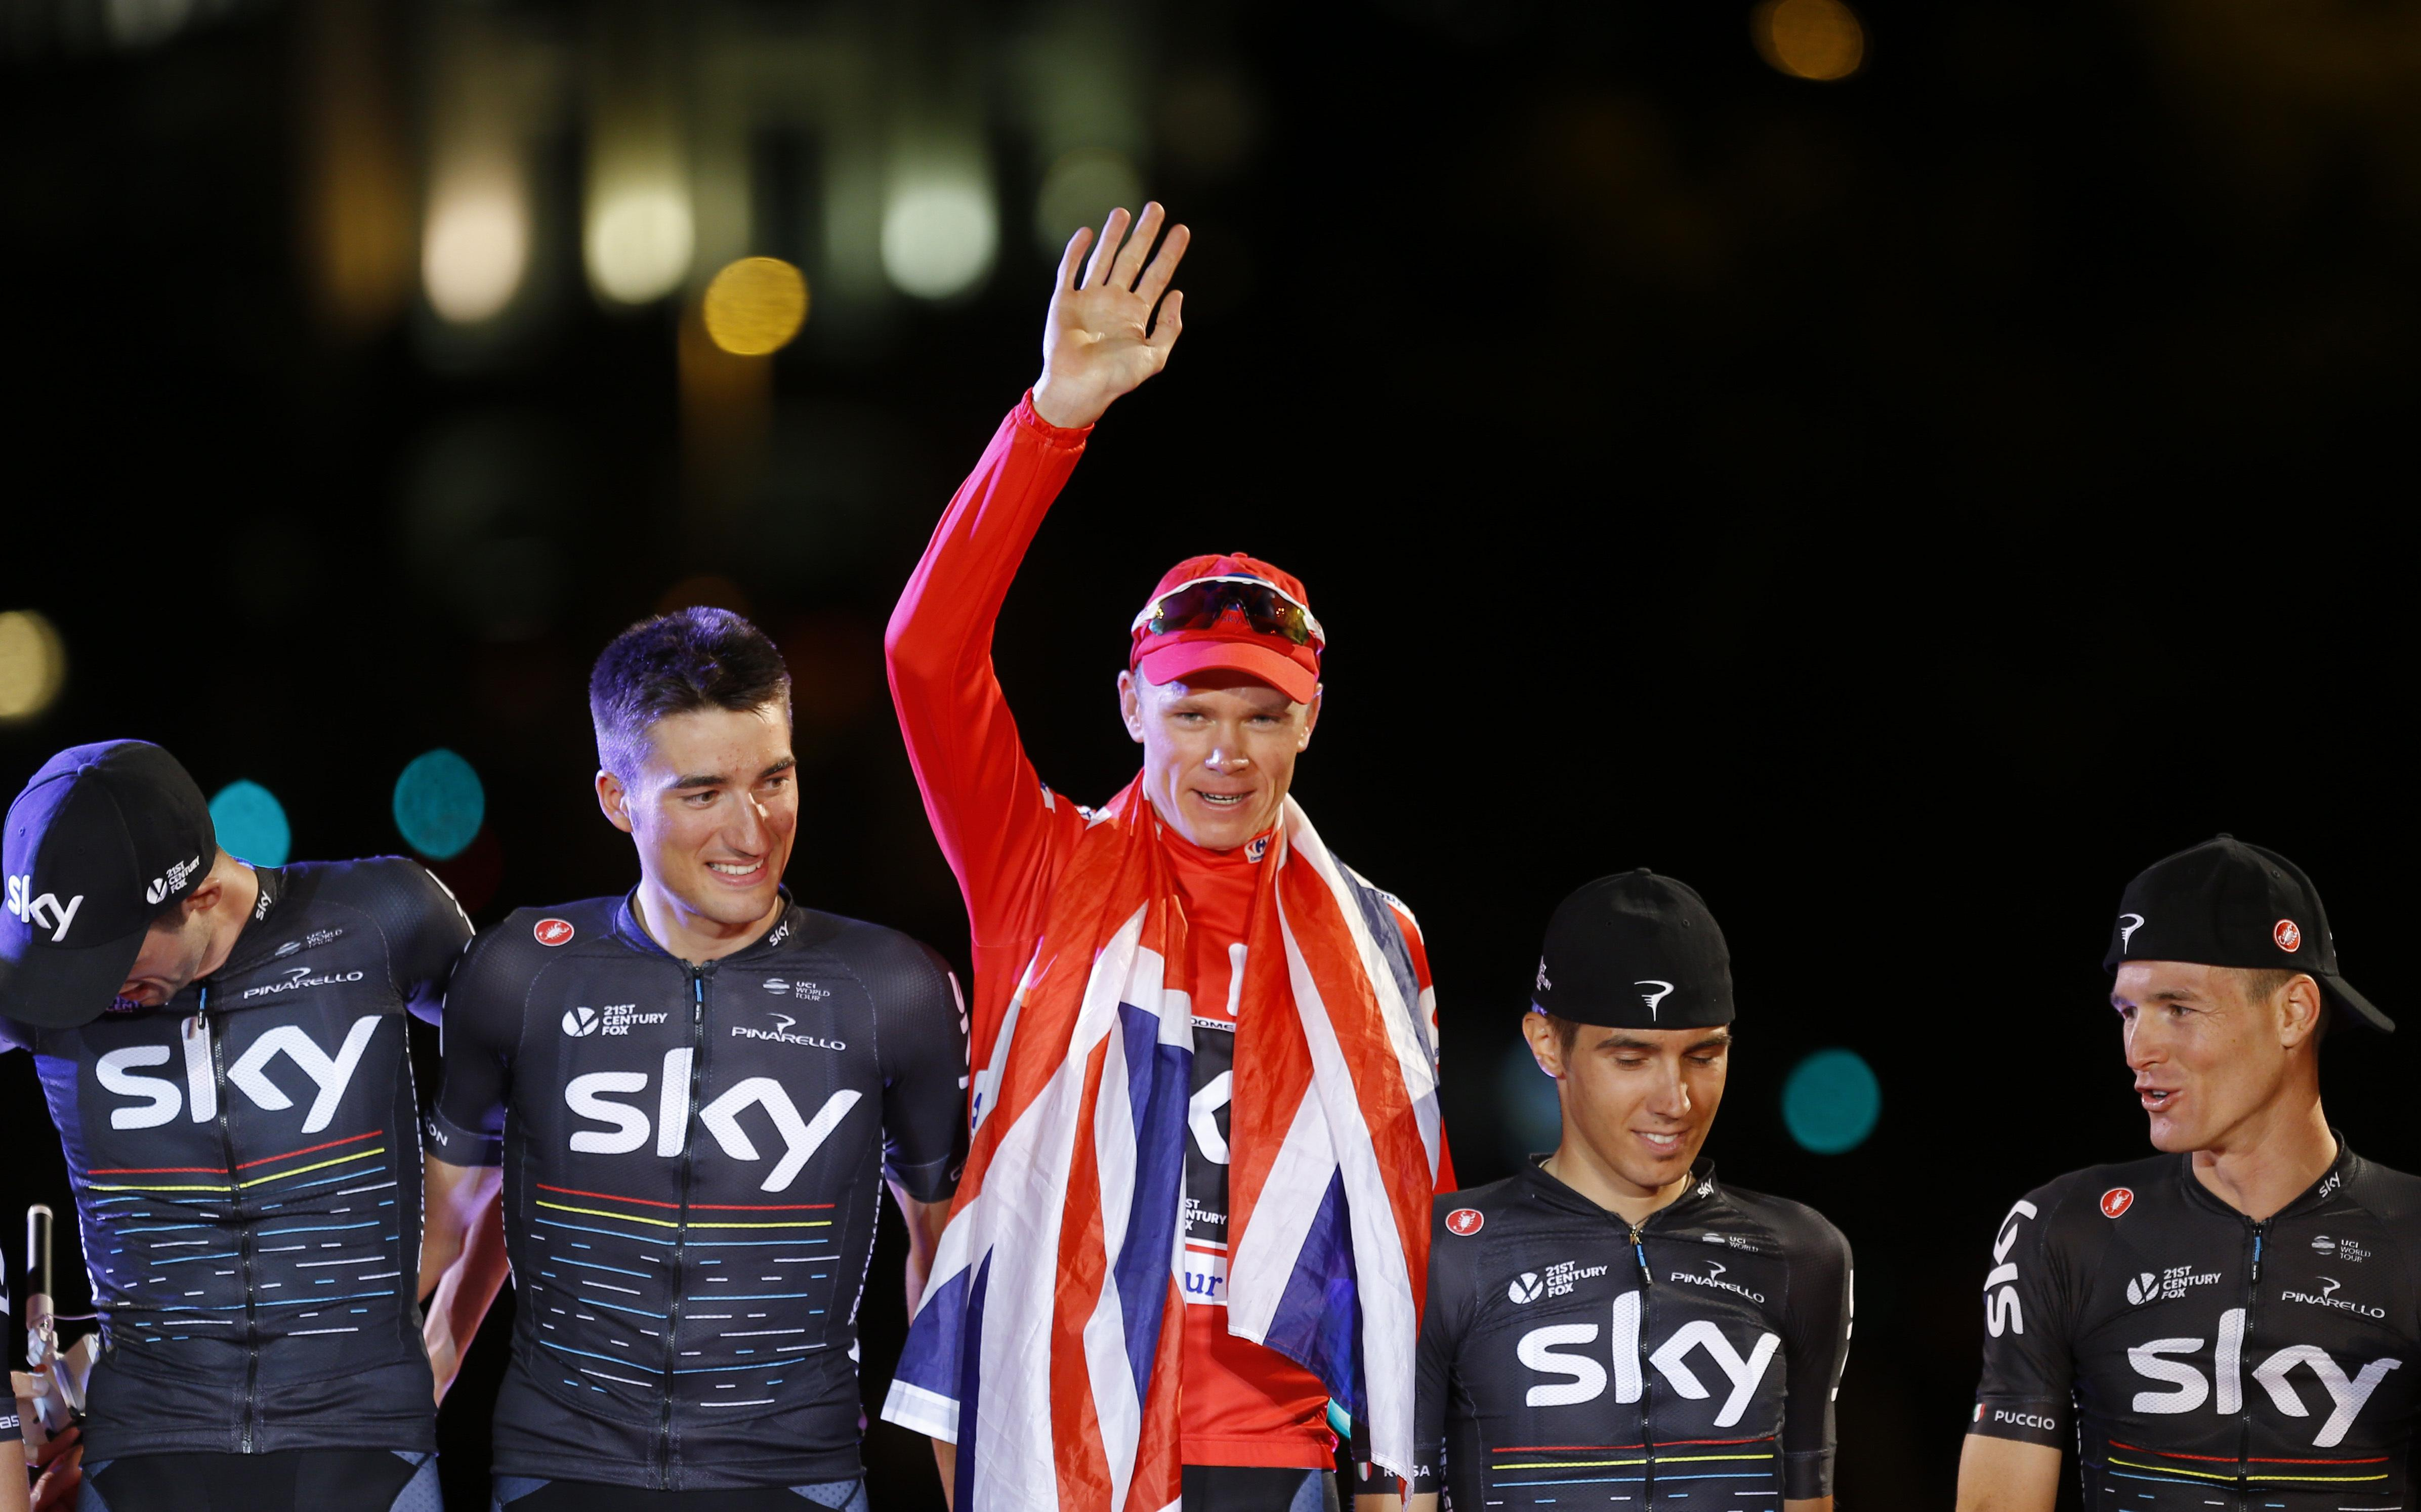 The Team Sky leader celebrated winning the Vuelta a Espana for the first time last September